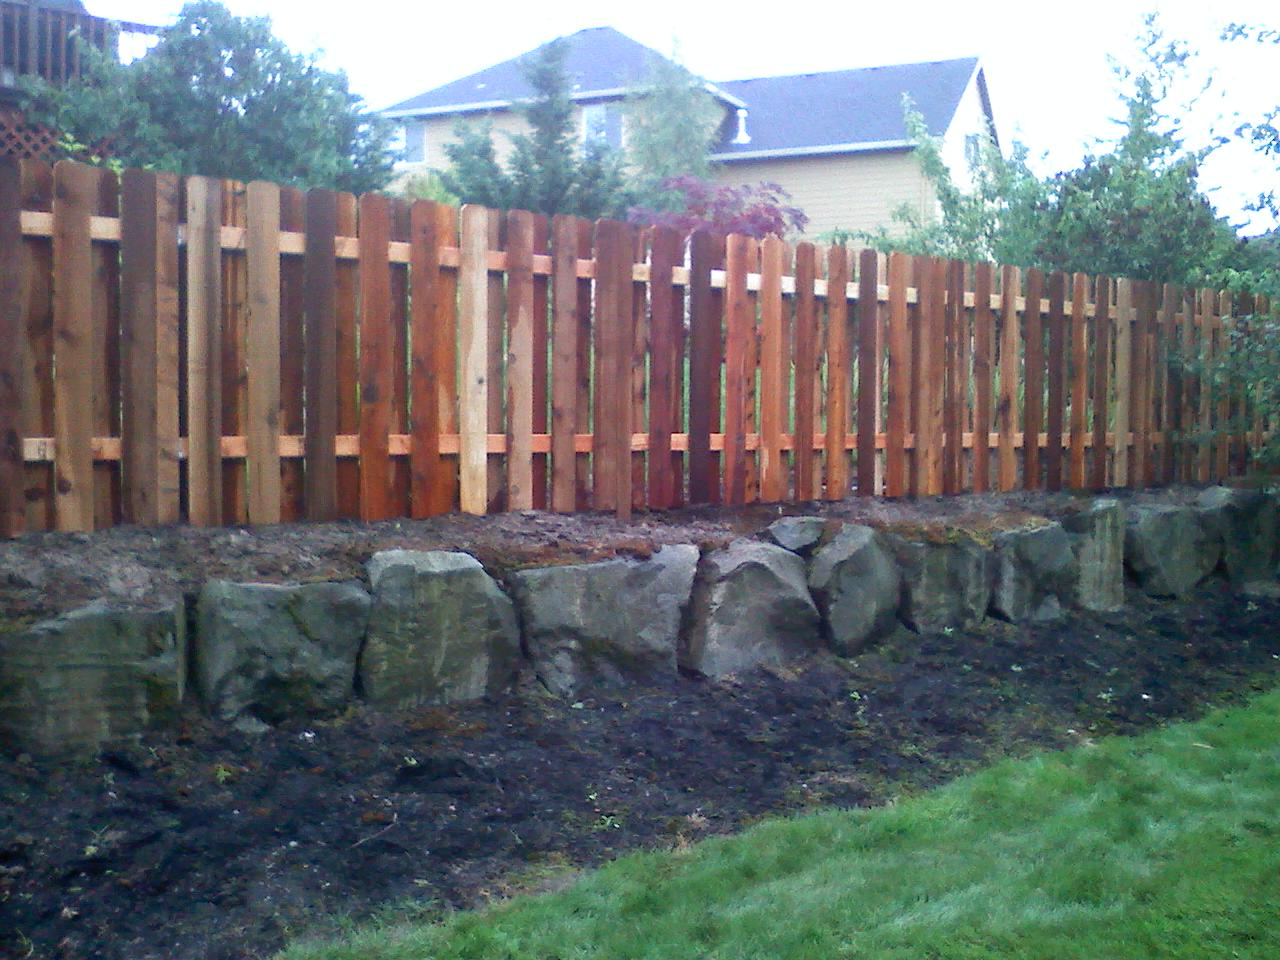 Cedar Fences any Style or Design 4